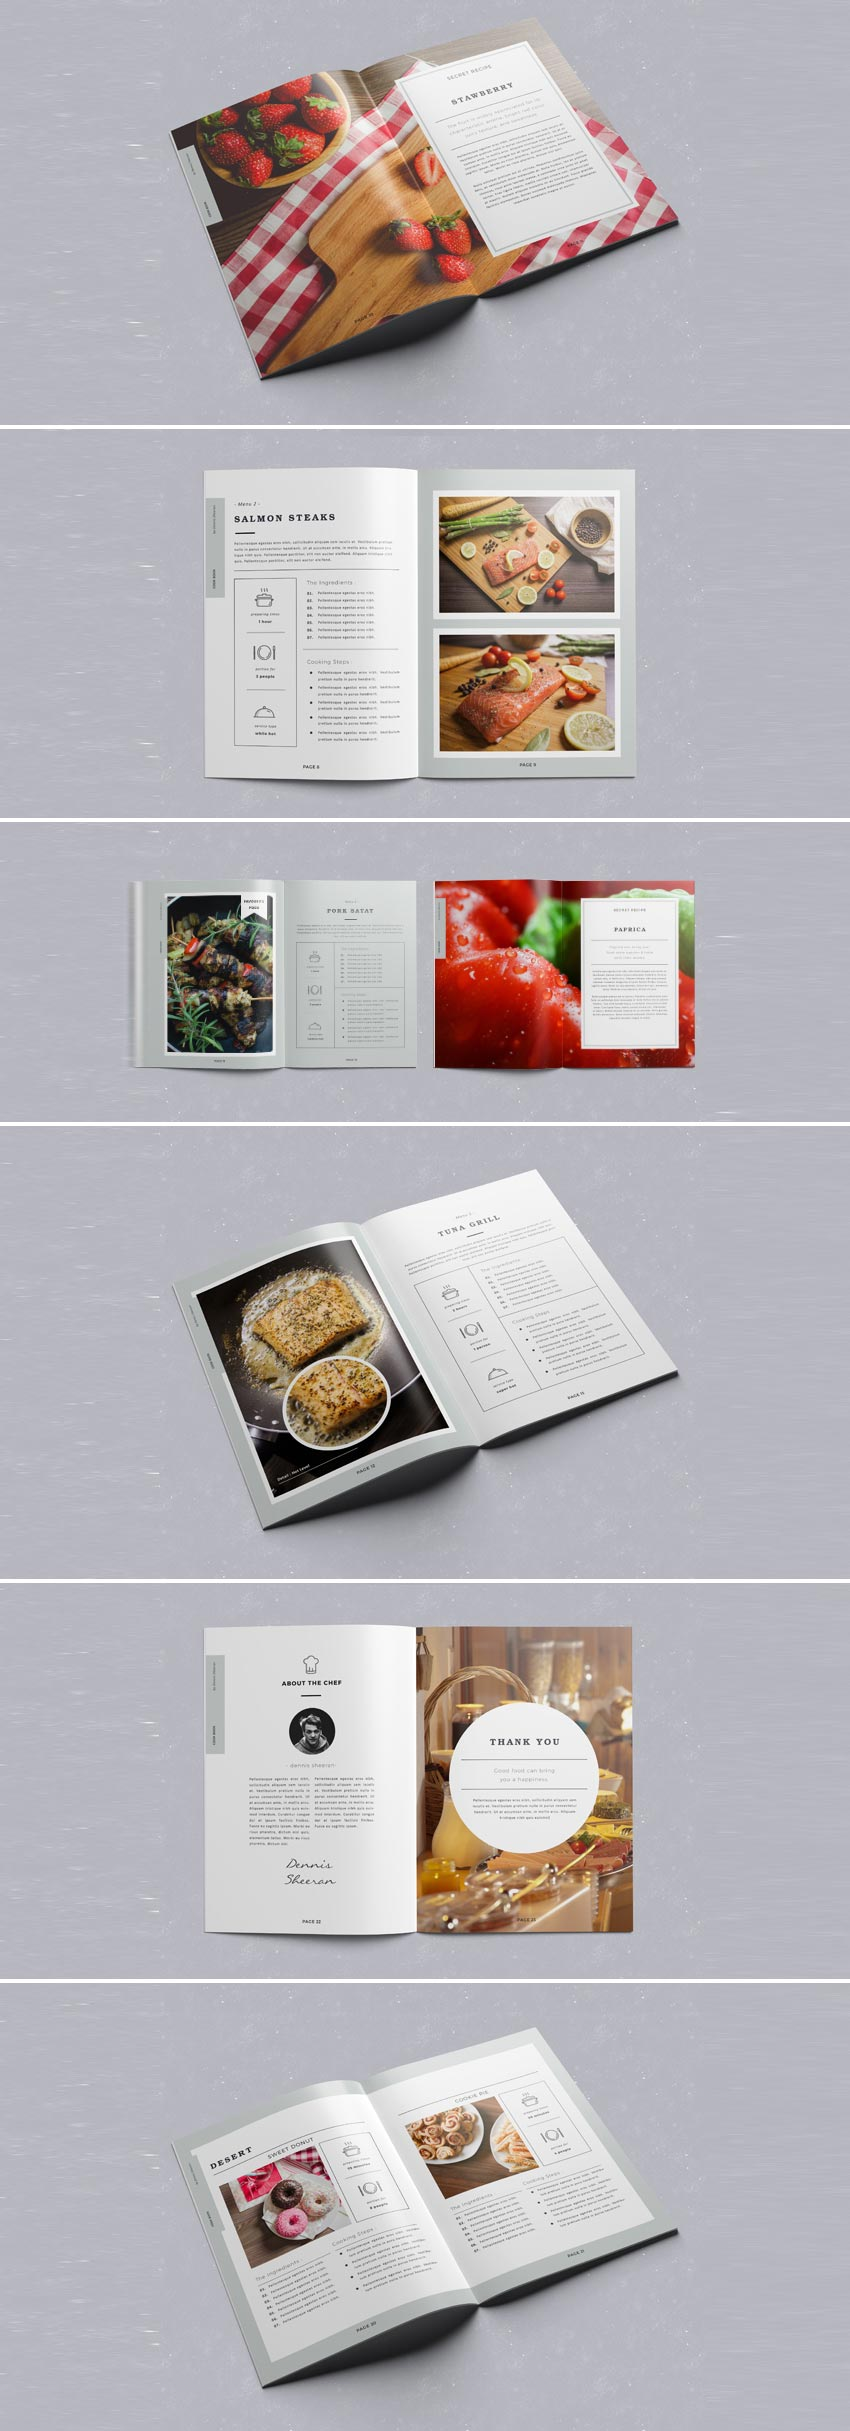 InDesign Templates Every Designer Should Own - Indesign template brochure